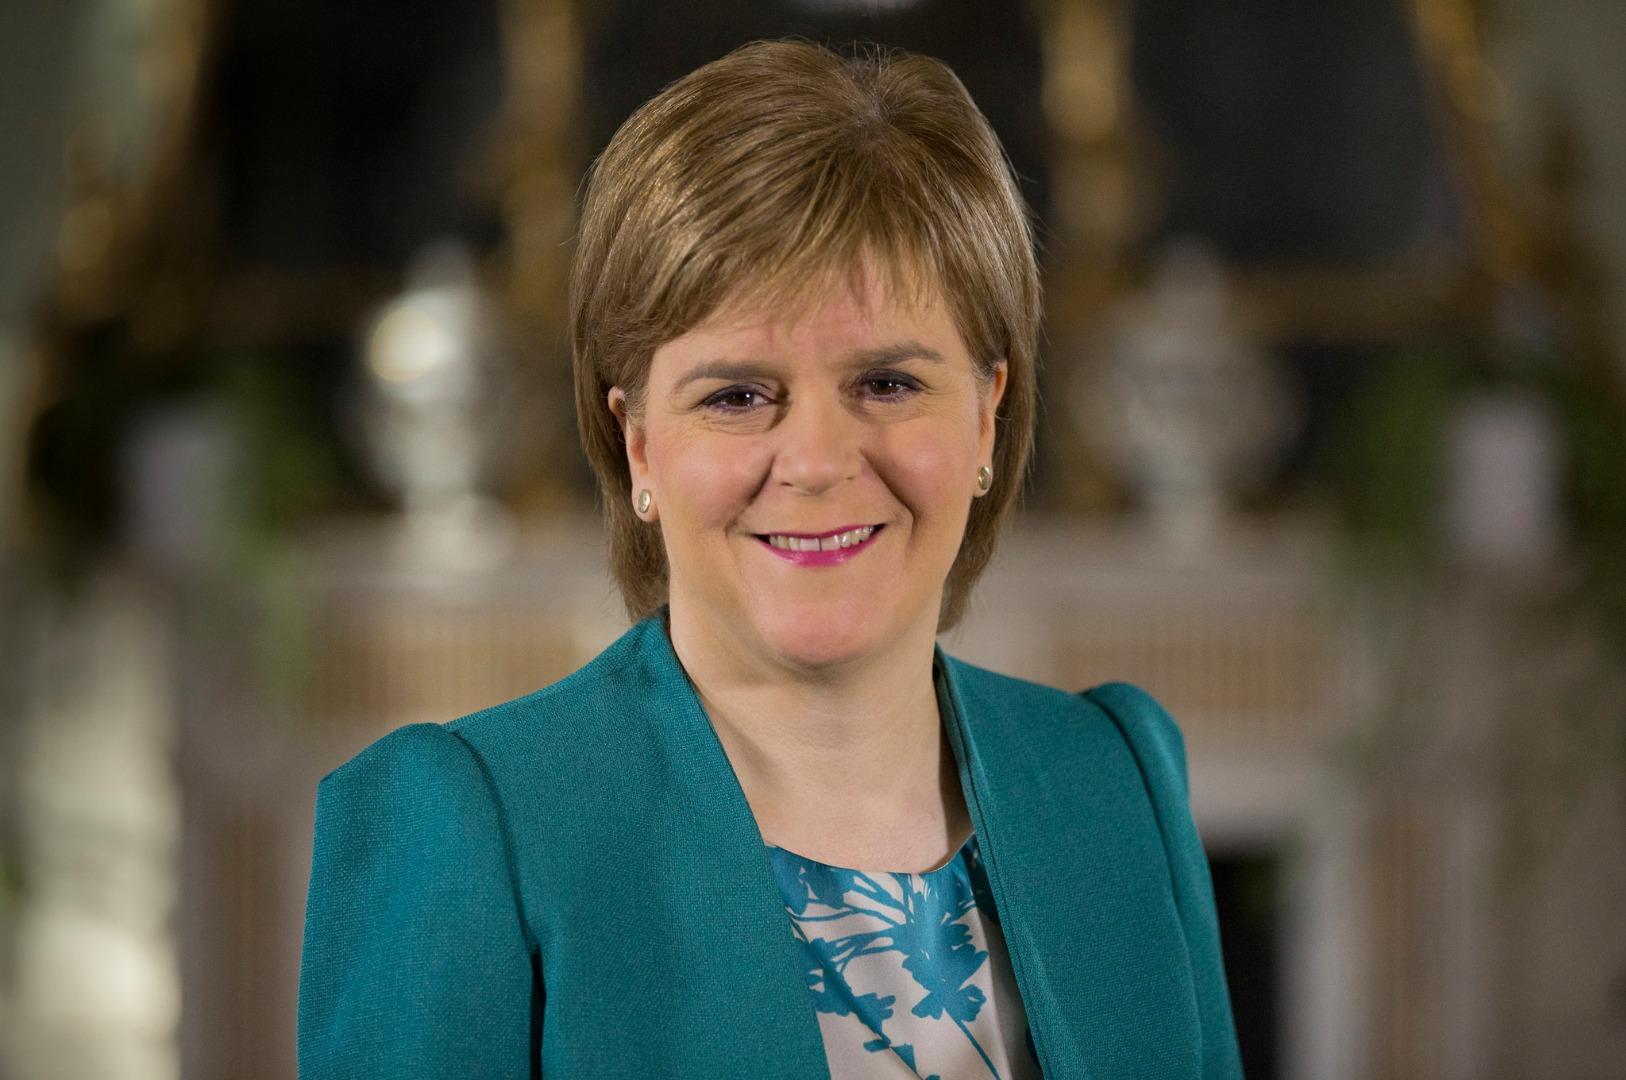 First Minister Nicola Sturgeon offers backing to Paisley 2021 culture bid